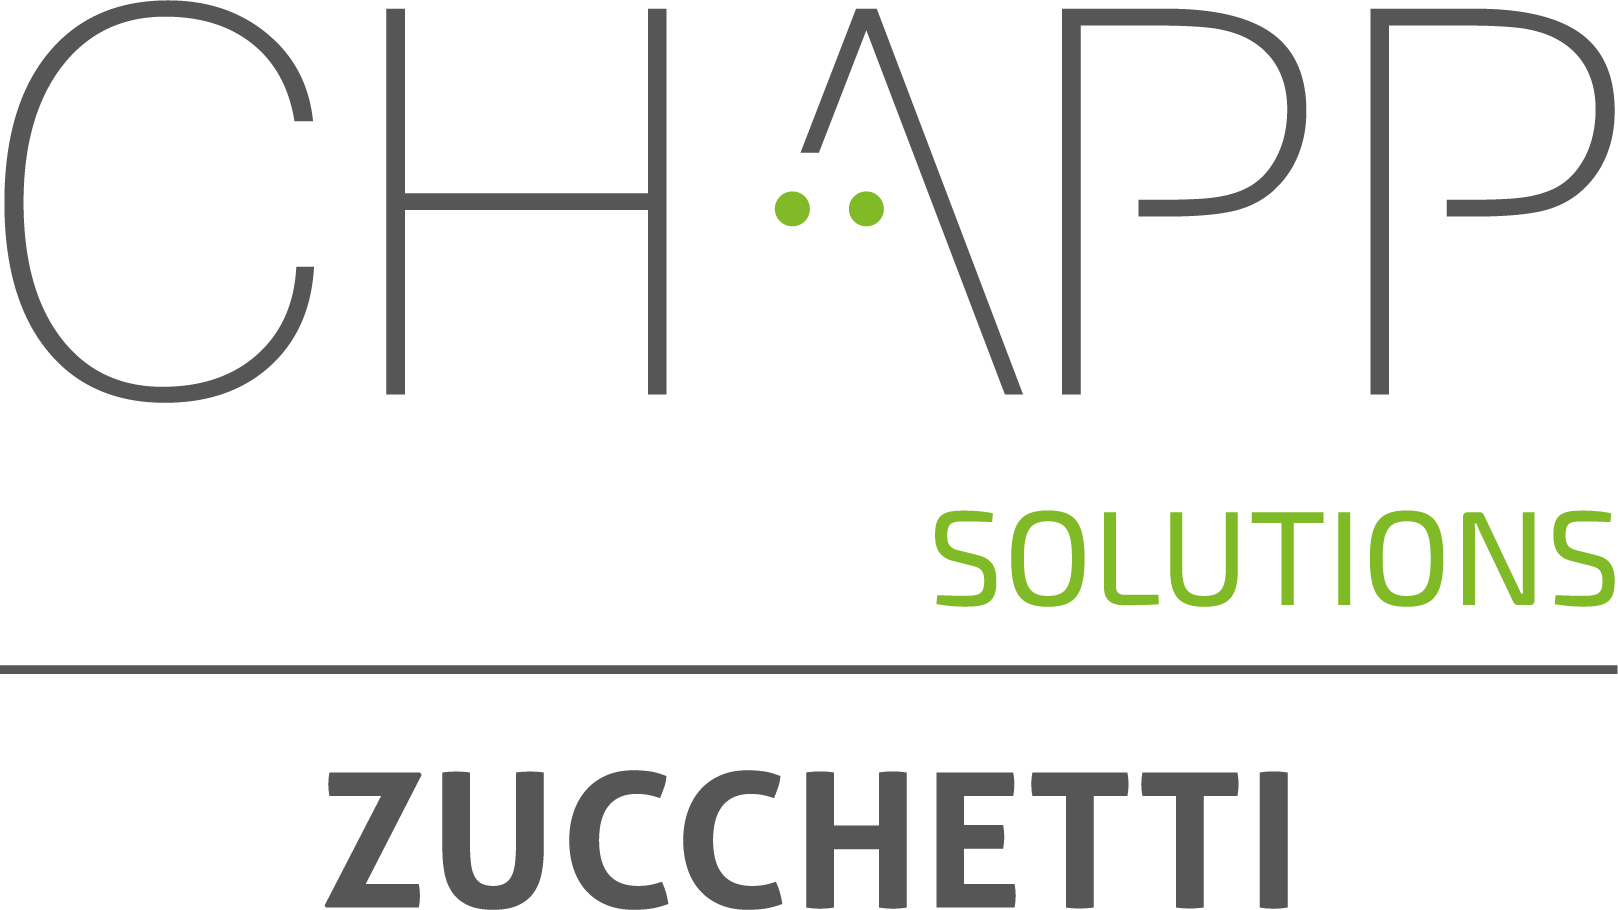 ChappSolutions